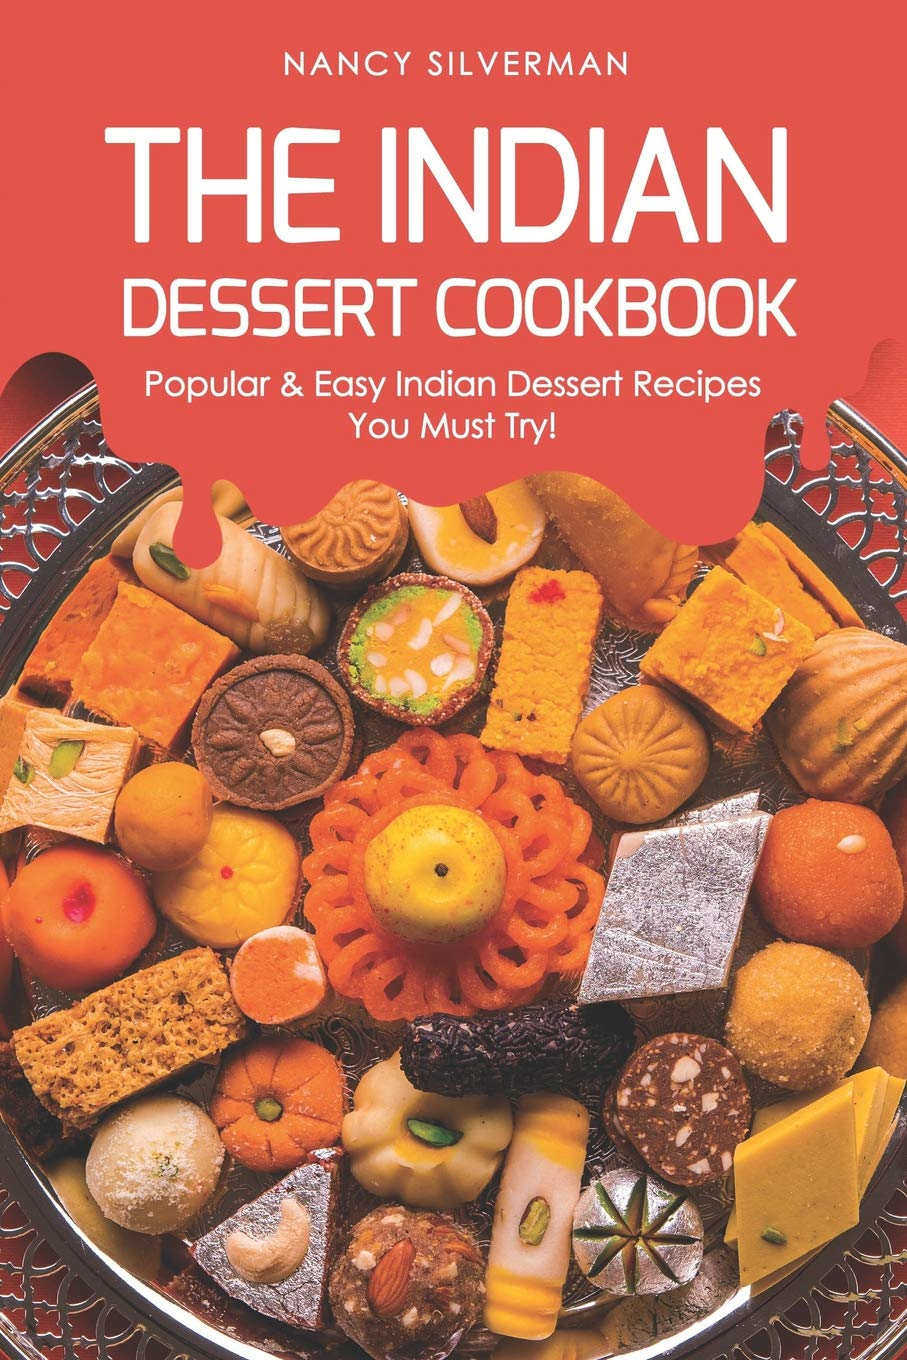 The Indian Dessert Cookbook Popular Easy Indian Dessert Recipes You Must Try Silverman Nancy 9781095627891 Amazon Com Books